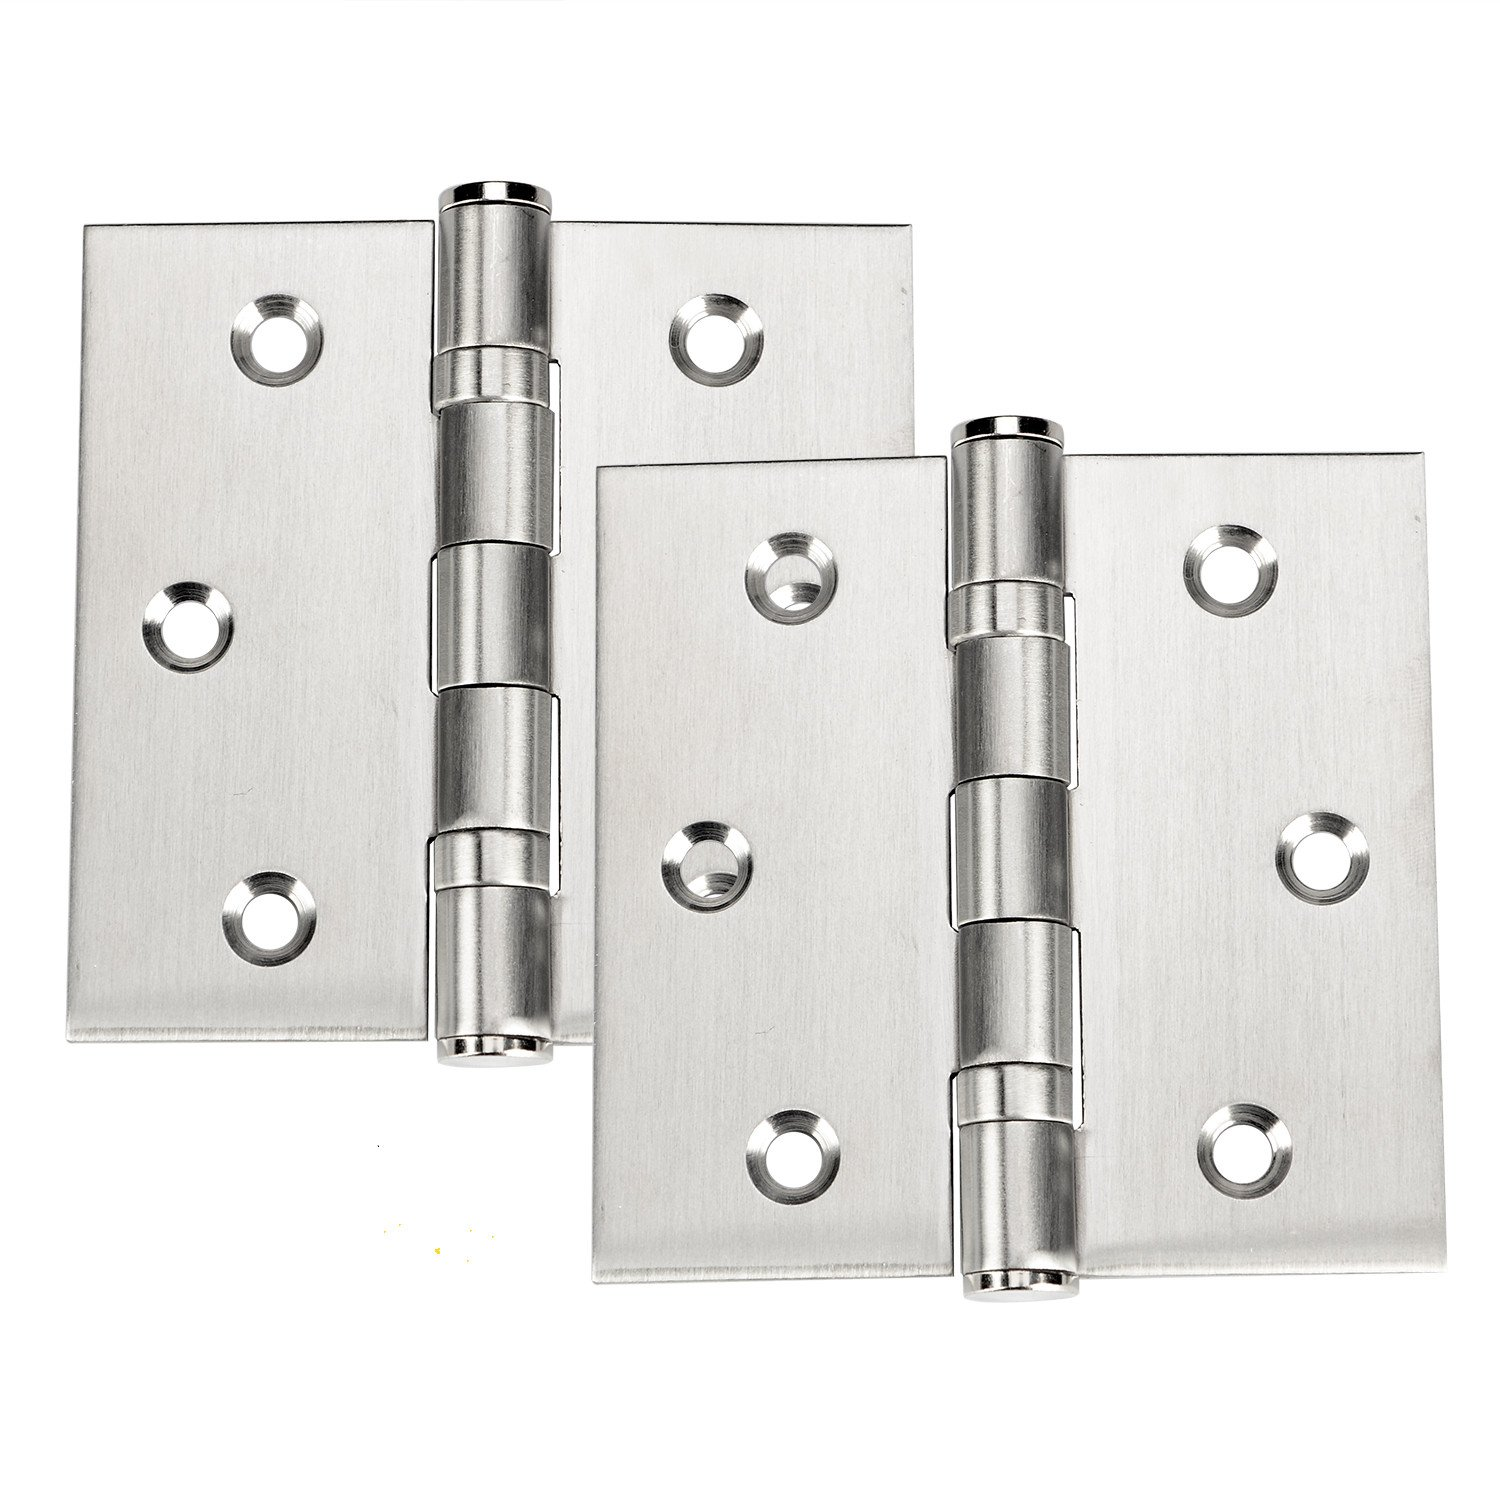 Stainless Steel Hinges, 2-Pack 3.5'' X 3.5'' Door Hinge With Brushed Nickel